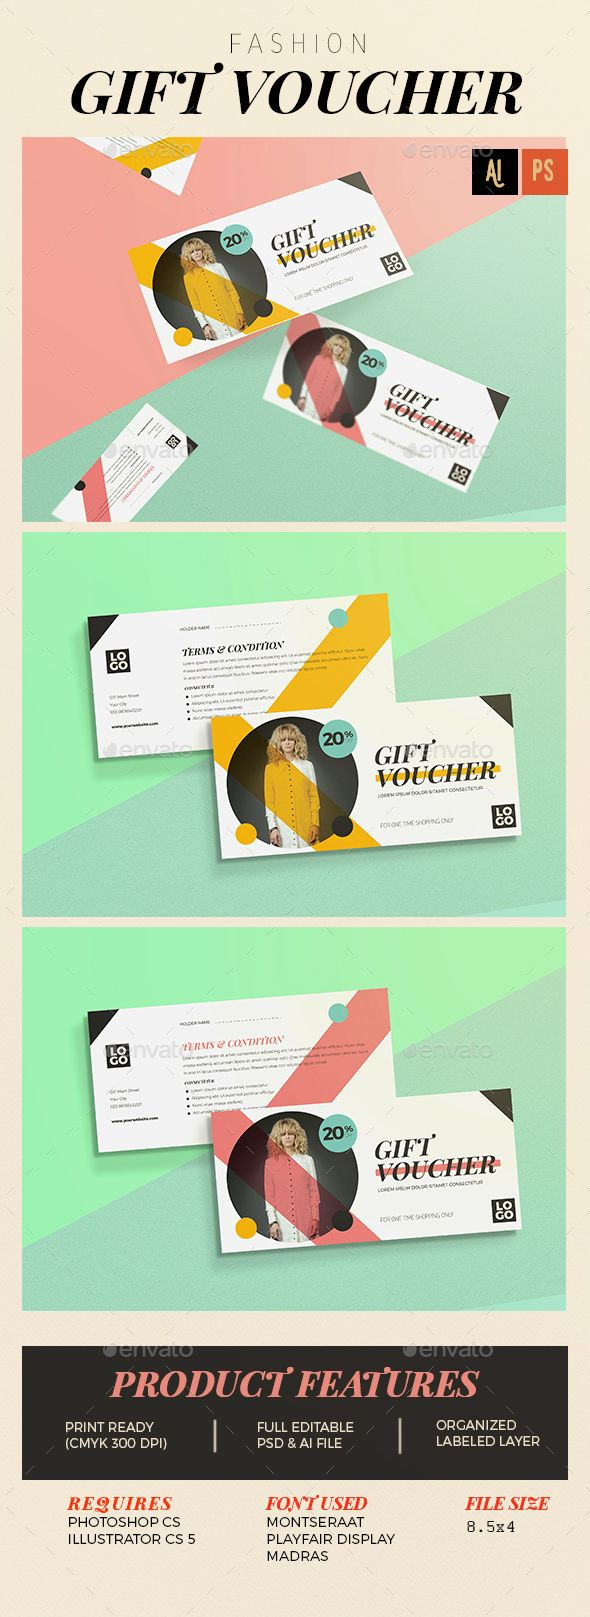 Fashion Gift Voucher Template PSD, Vector AI #design Download: http://graphicriver.net/item/fashion-gift-voucher/14204621?ref=ksioks